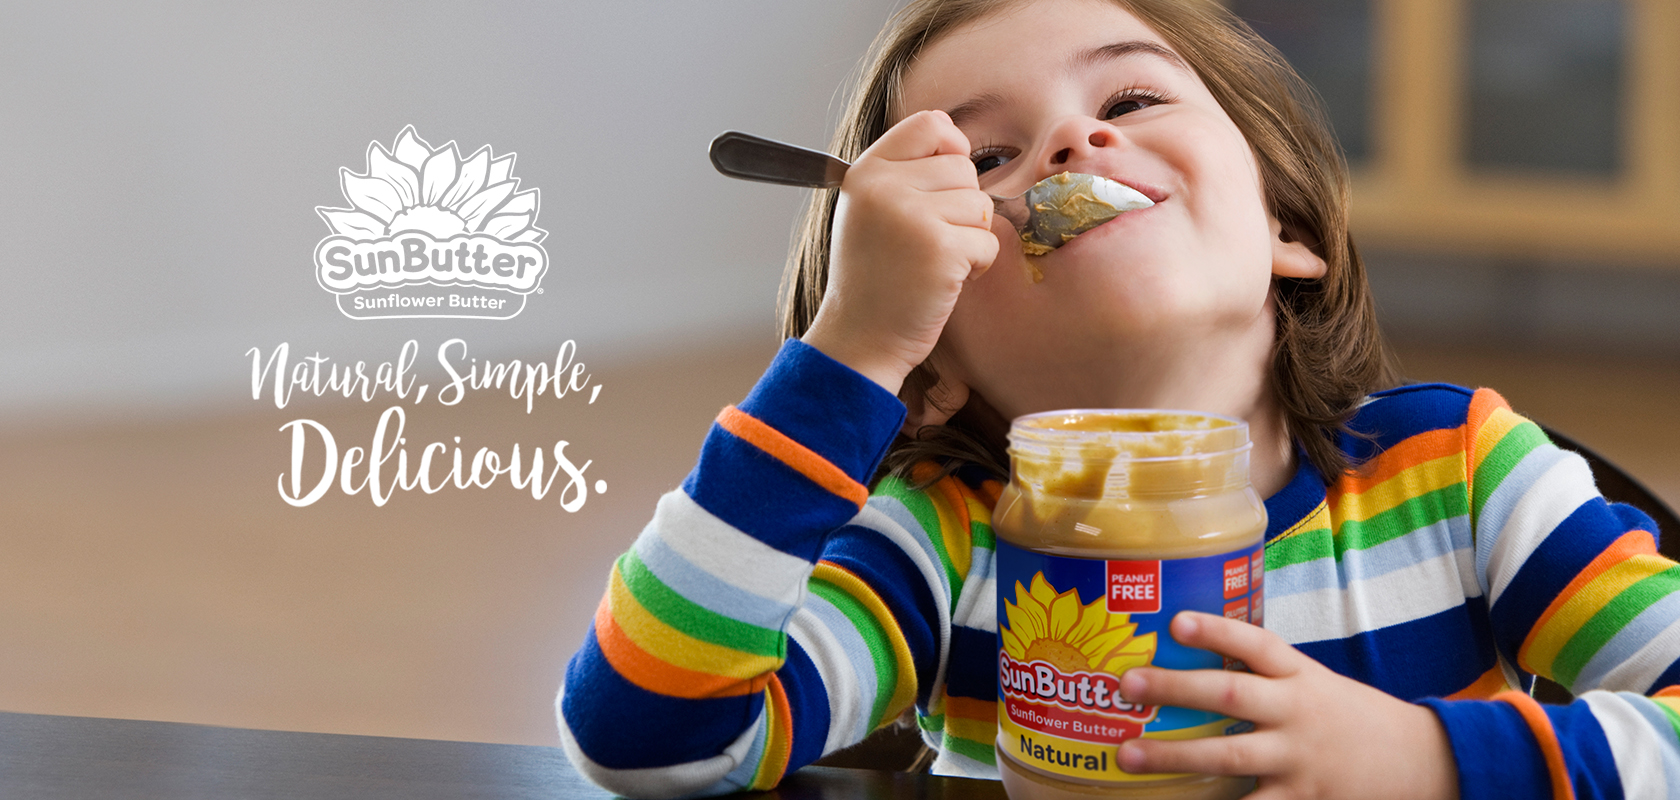 SunButter: Natural, Simple, Delicious.